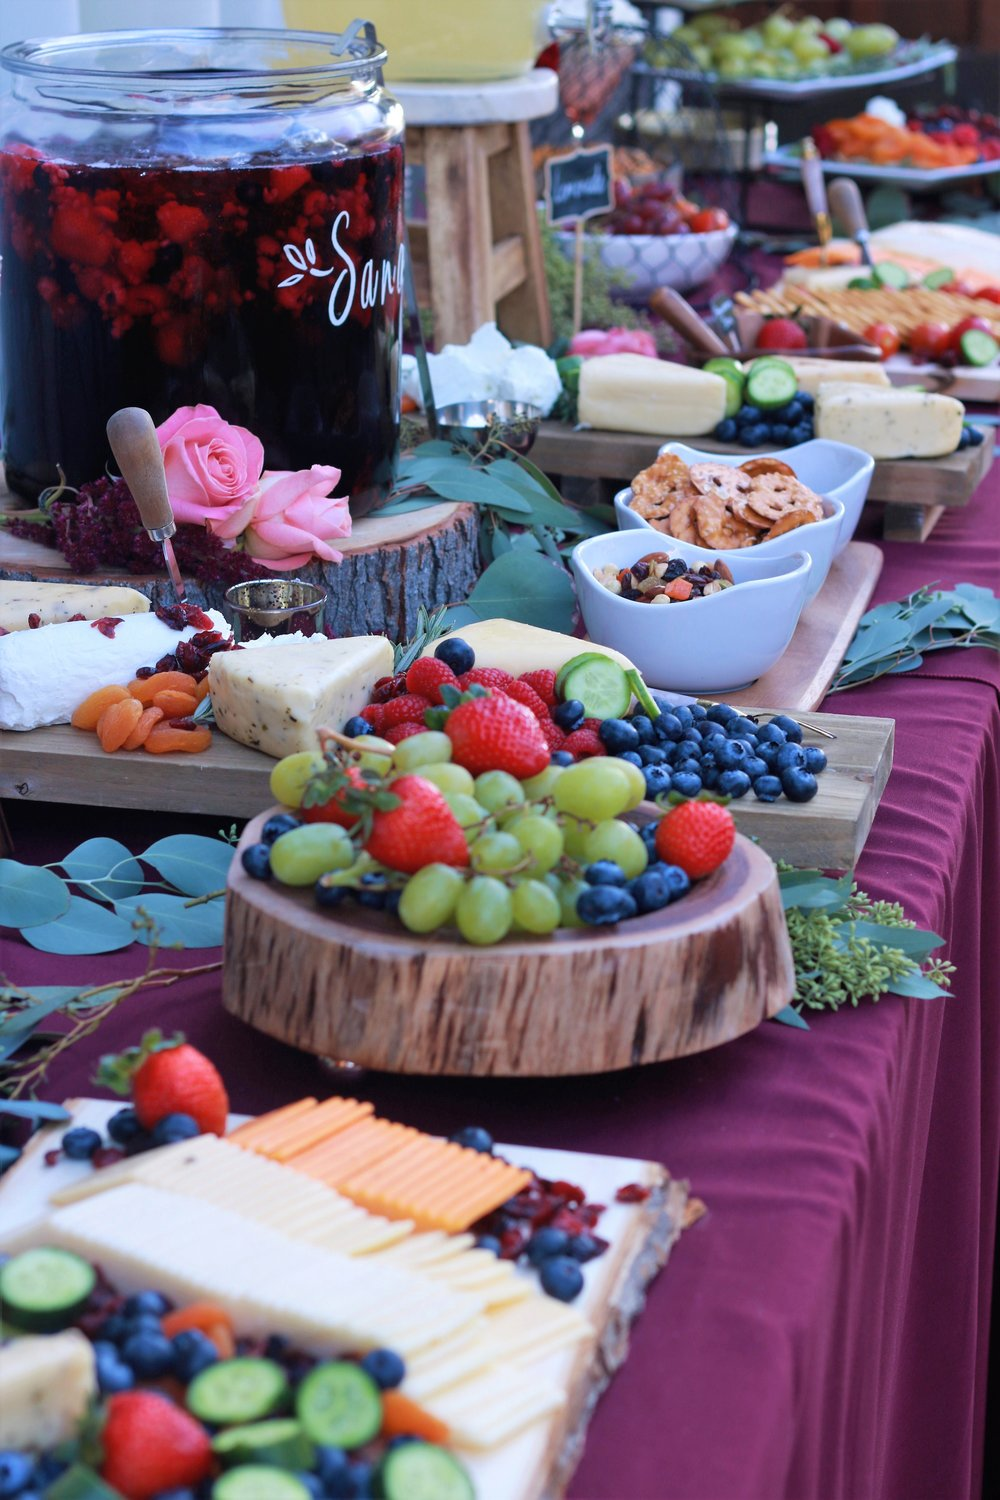 Fall Wedding Food-wedding appetizer table-wedding foods-wedding-burgundy wedding-rustic wedding-sangria-wedding cocktail hour-www.SugarPartiesLA.com